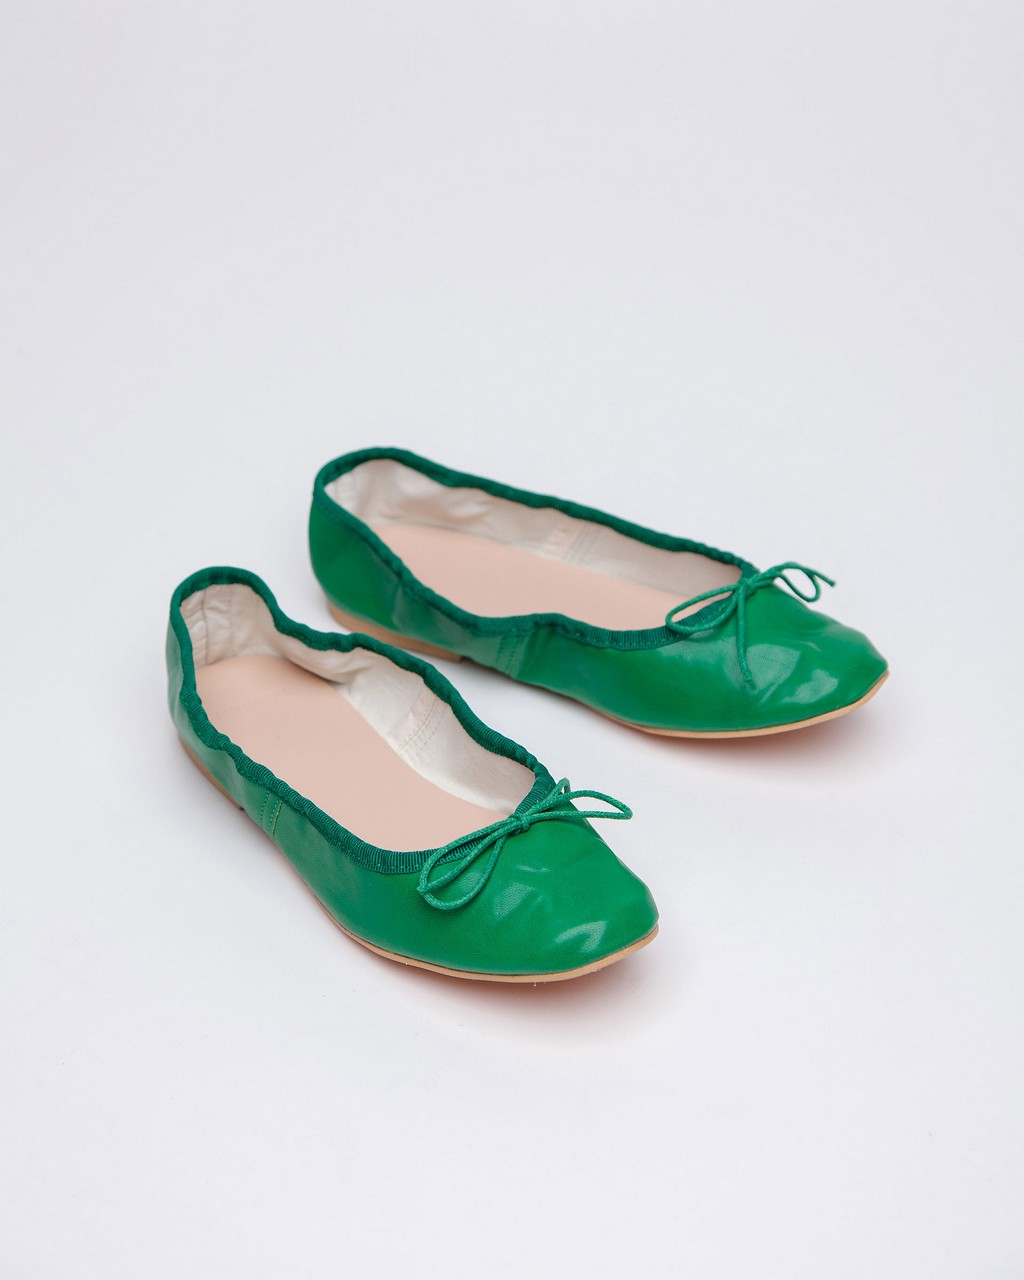 Tagtraume E.Ballerina-Spring - New Green(뉴 그린)